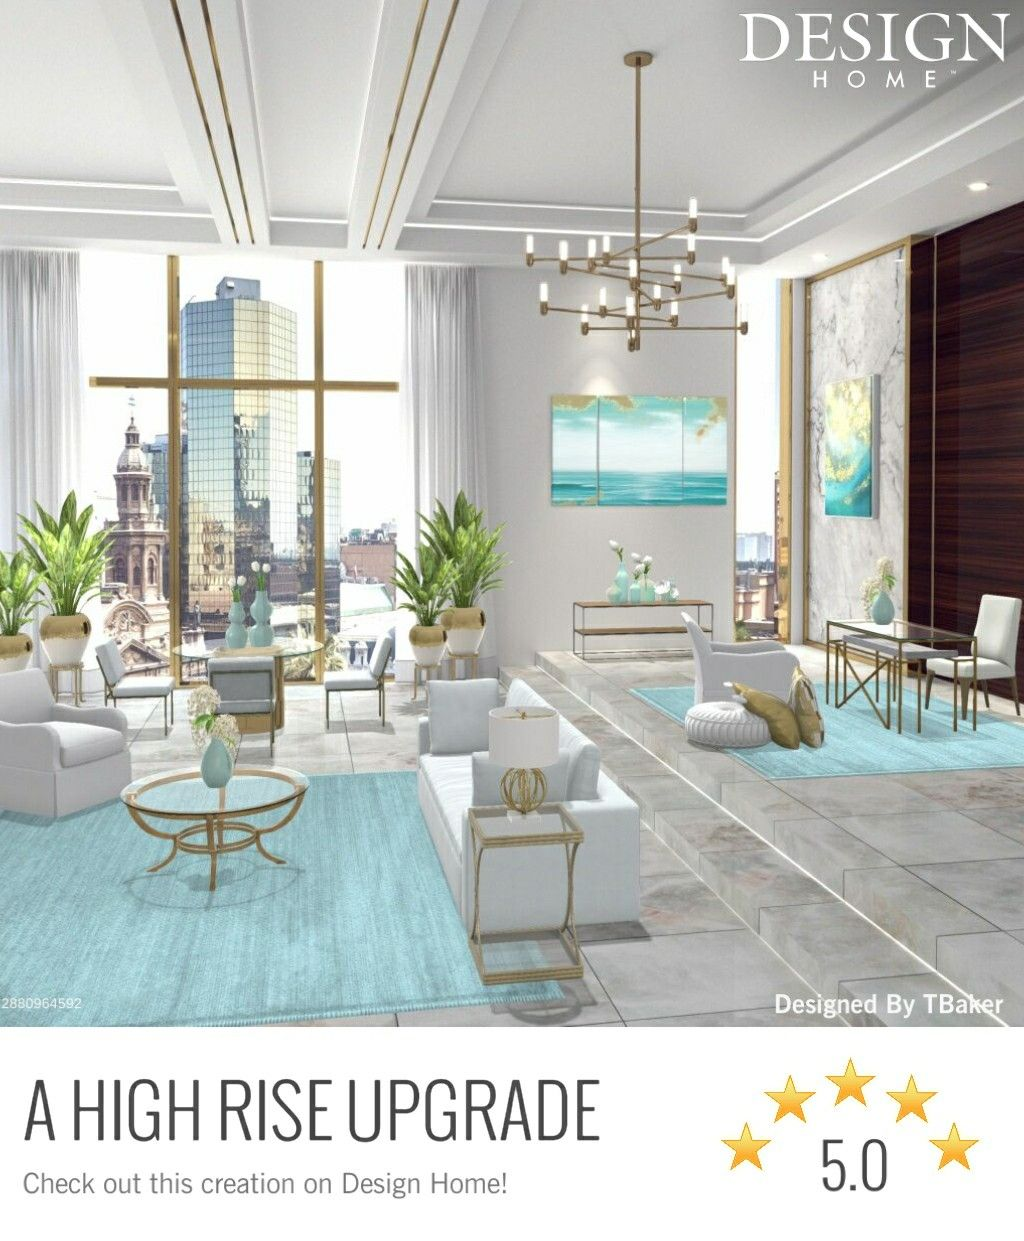 Pin By Sarah Sever On 1 Gaming Design Home Design Home App Dining Table Decor